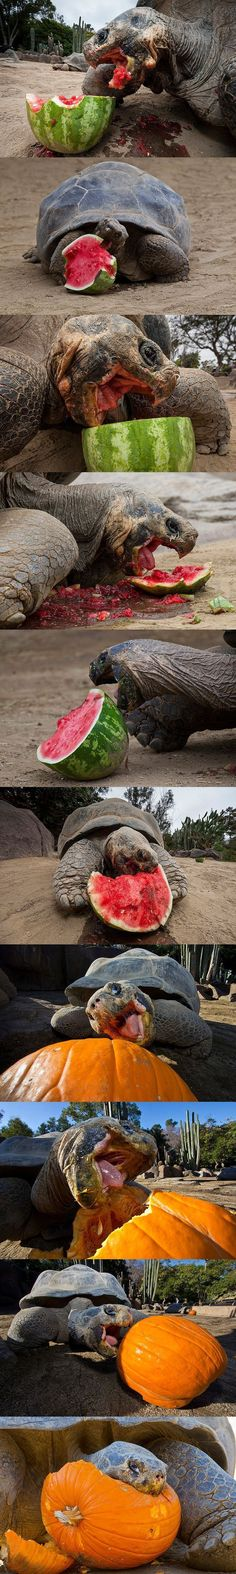 10 photos of Galapagos tortoises chowing down at San Diego Zoo. Sulcata Tortoise, Tortoise Care, Giant Tortoise, Tortoise Turtle, Reptiles And Amphibians, Mammals, Beautiful Creatures, Animals Beautiful, Kinds Of Turtles